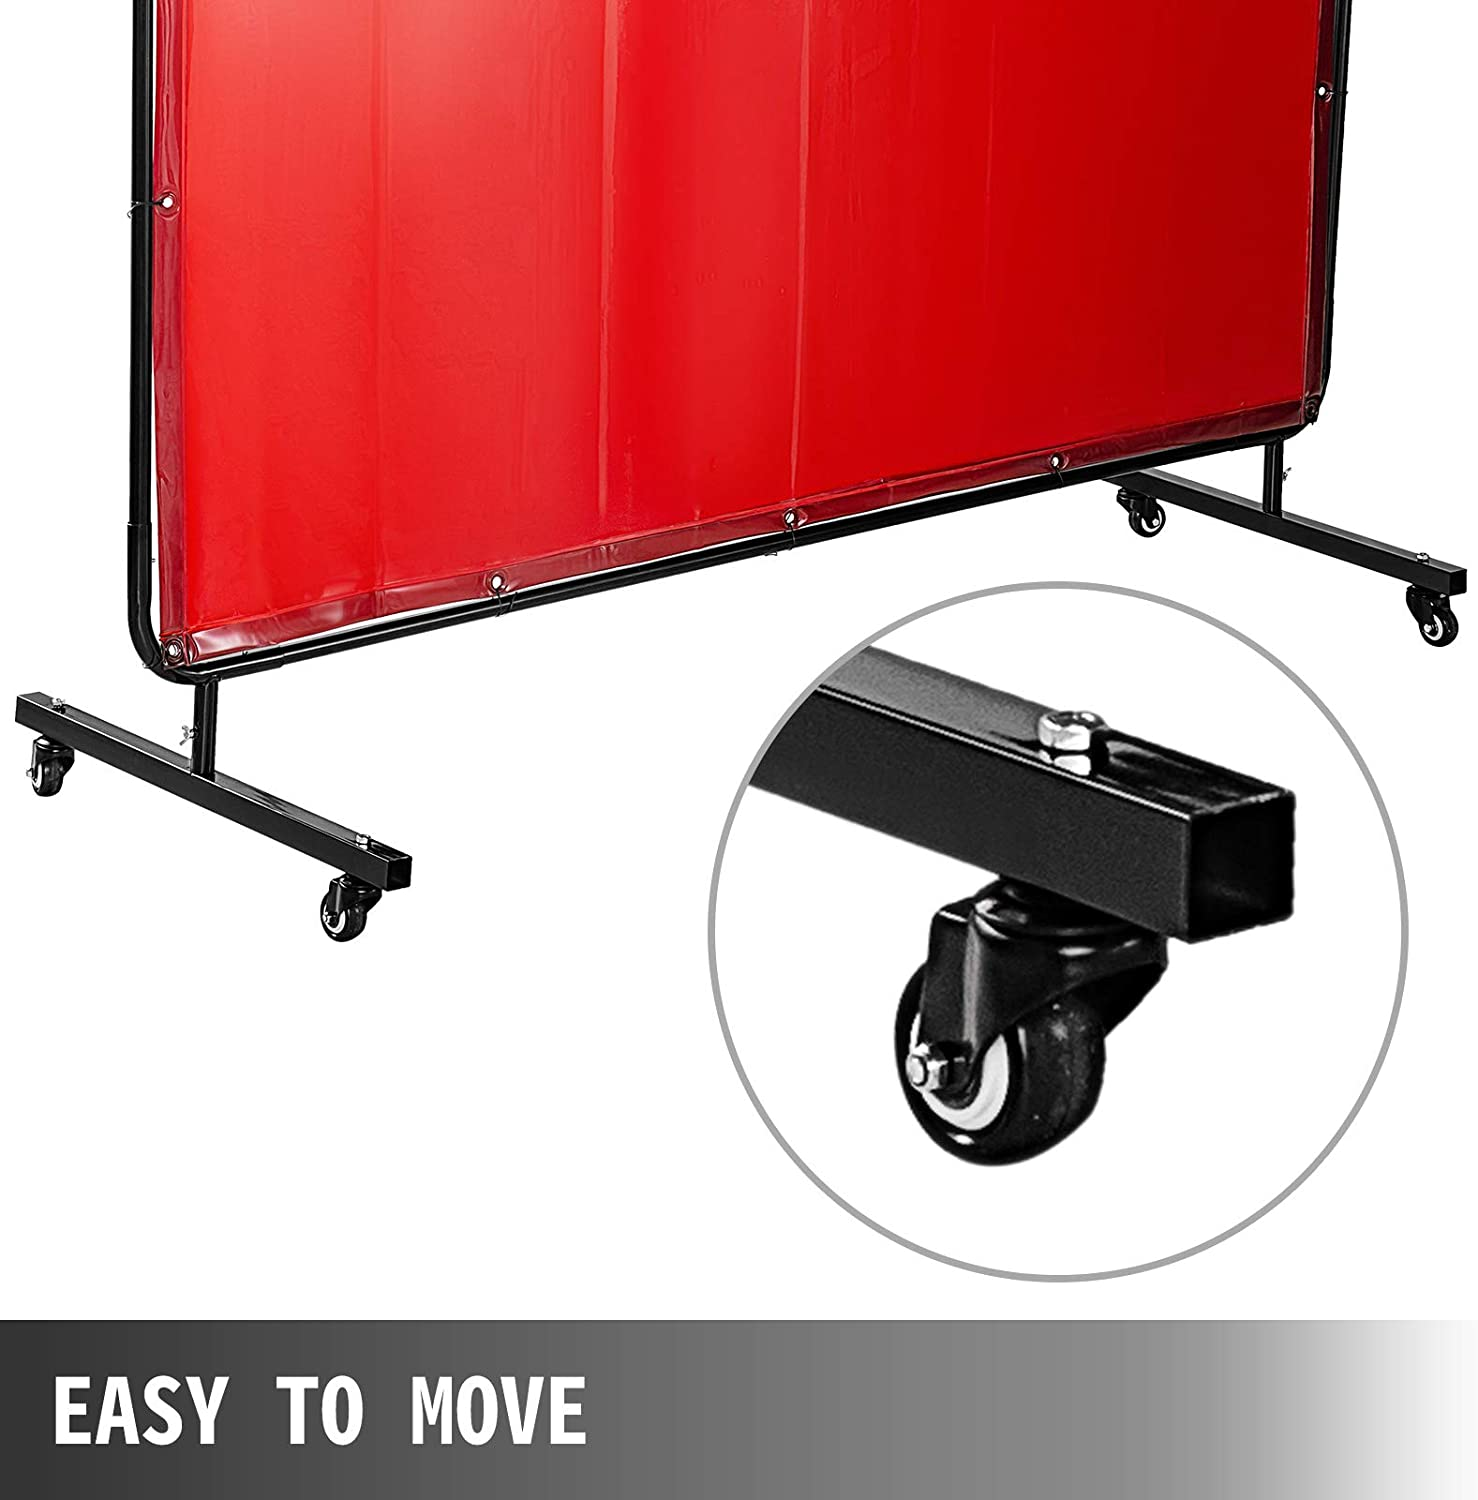 Welding Protection Screen Green Flame-Resistant Vinyl Mophorn Welding Screen with Frame 6 x 6 Welding Curtain with 4 Wheels Portable Light-Proof Professional